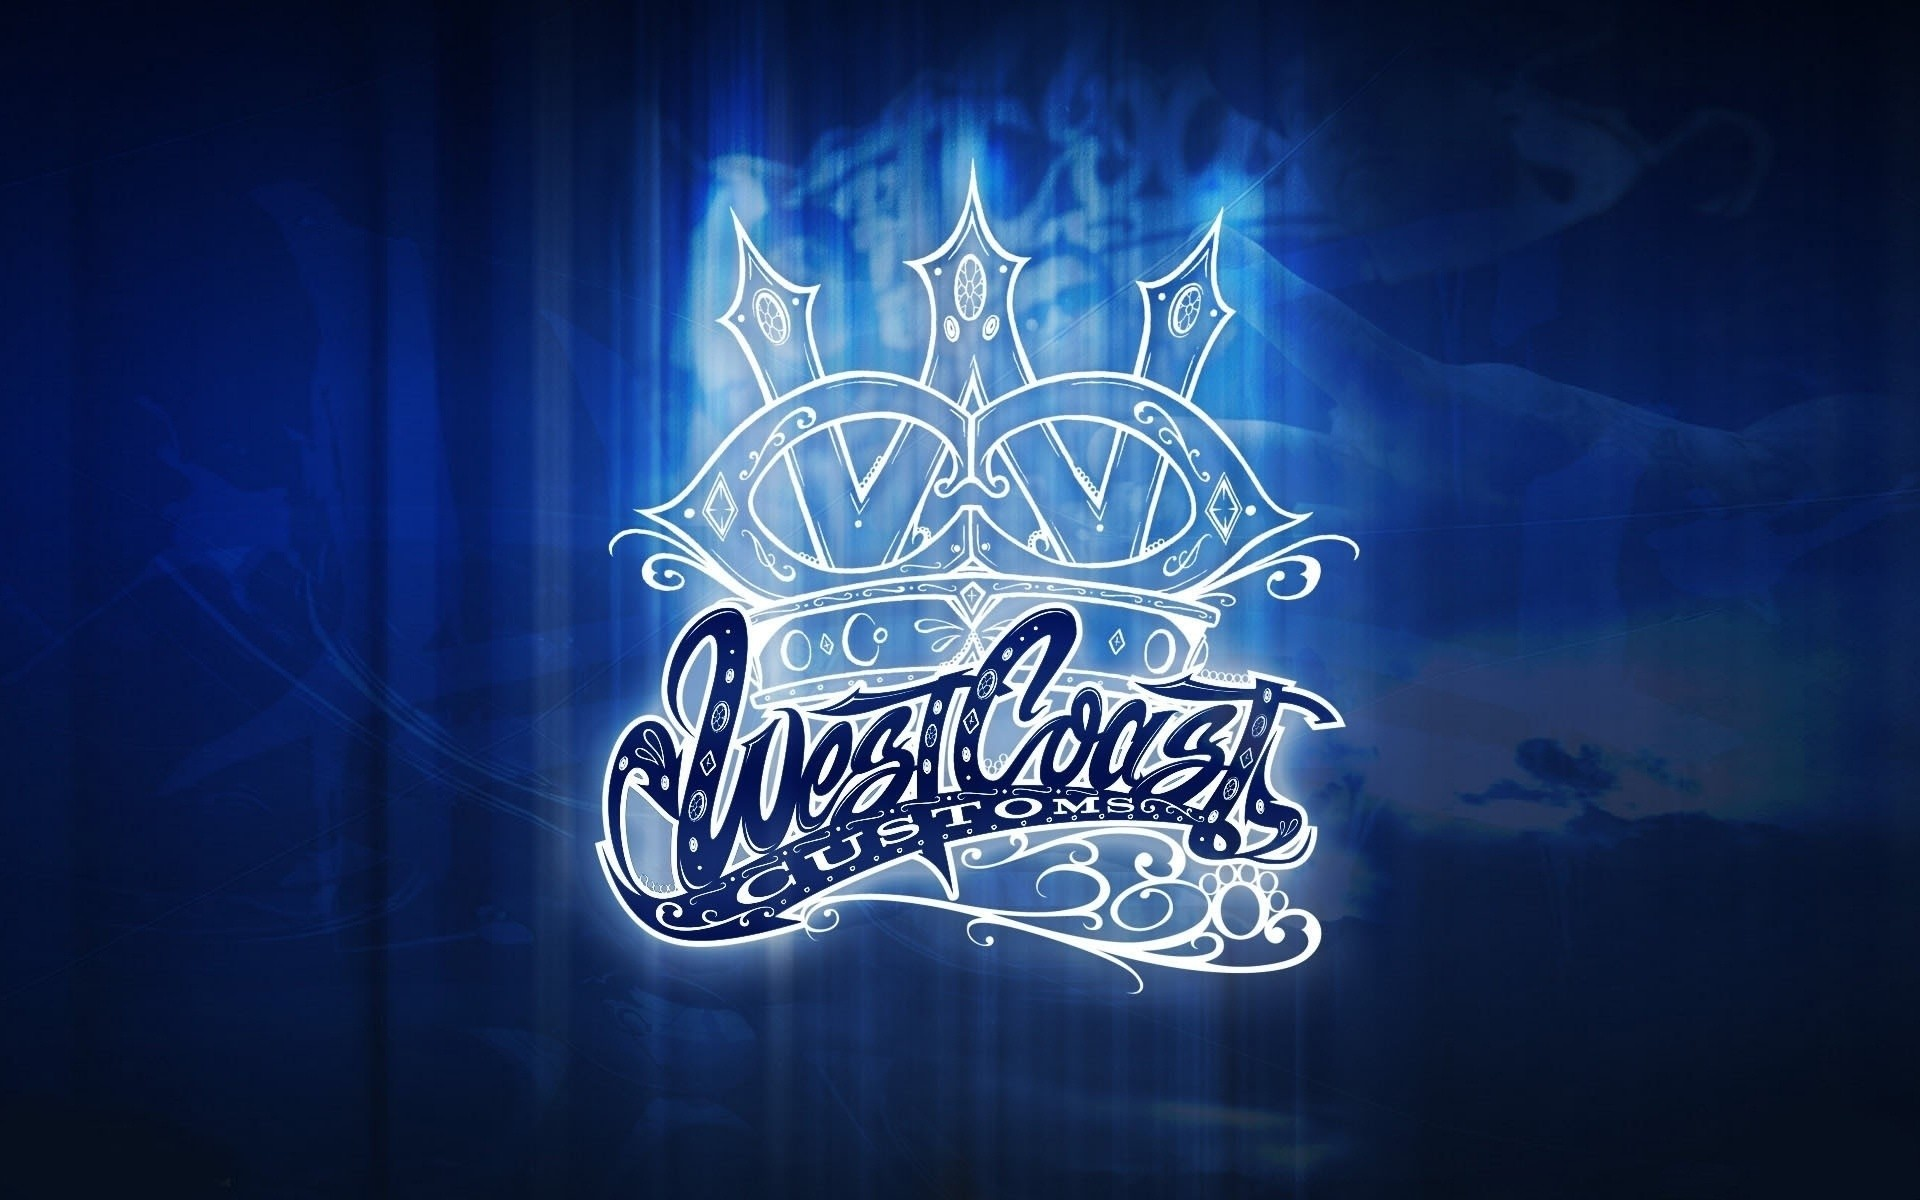 Hd Car Wallpapers For Pc 1024x768 West Coast Customs Car Wallpapers Hd Desktop And Mobile